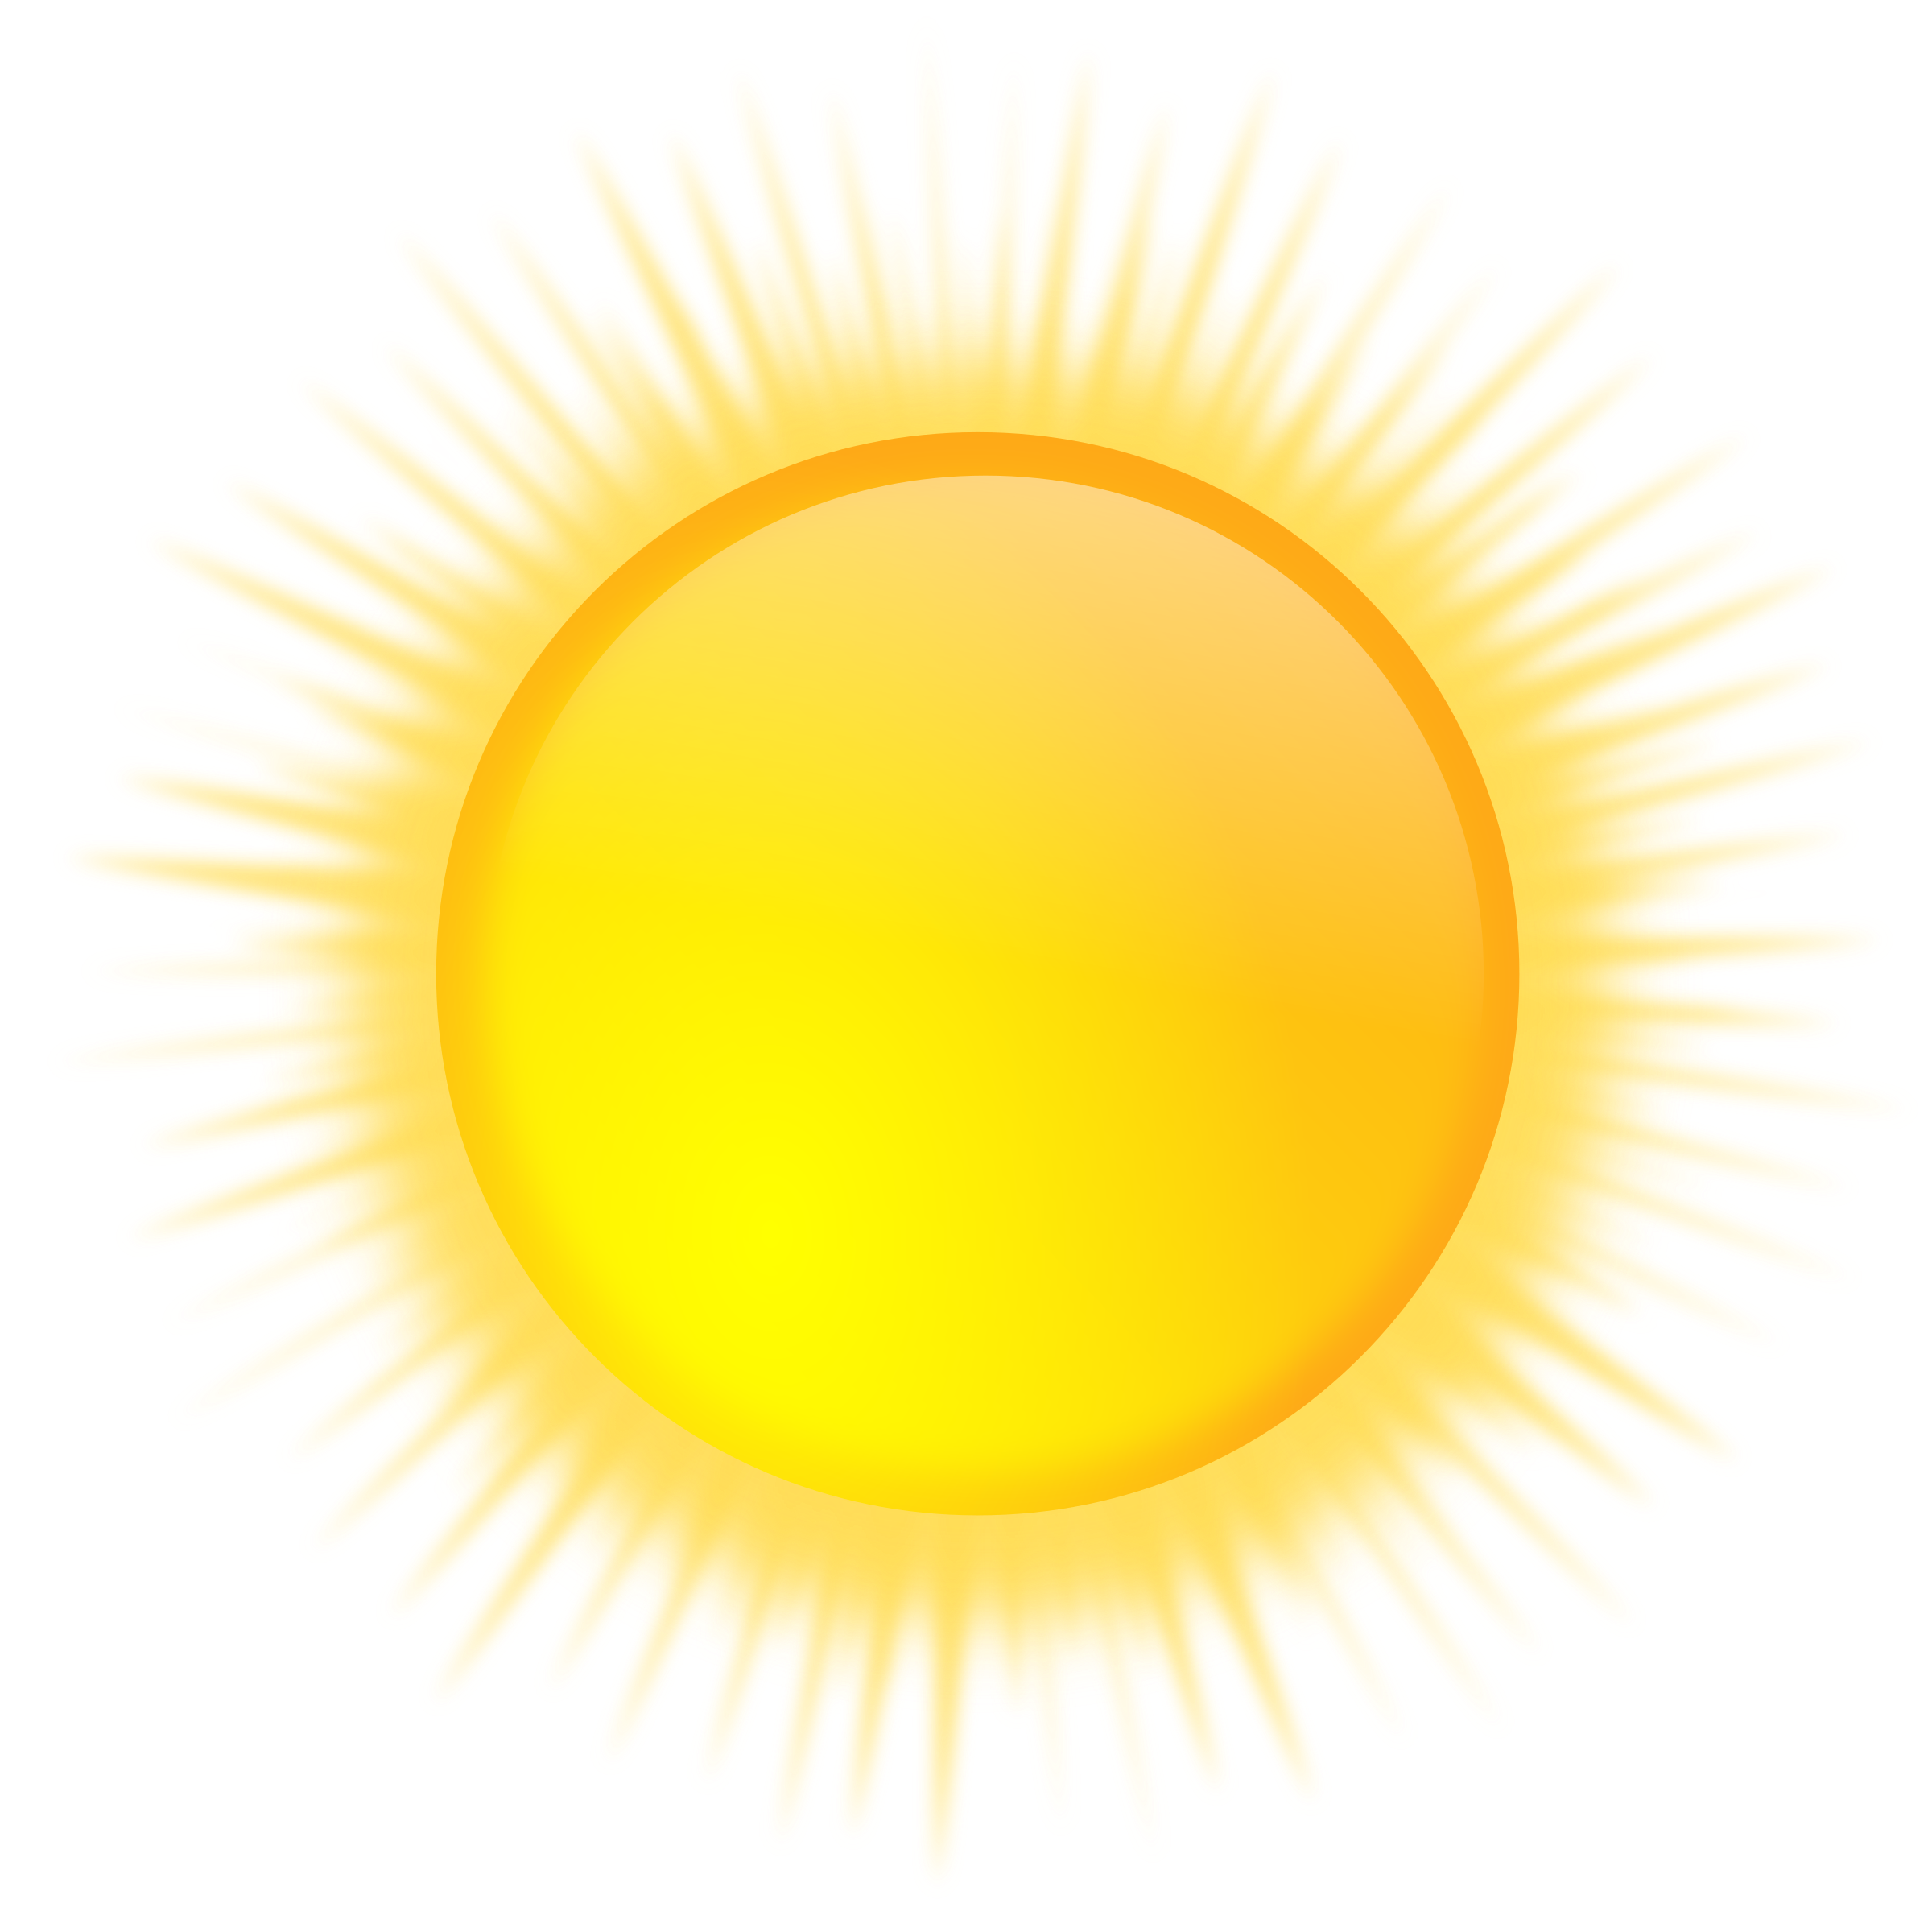 Sunny clipart weather nice. Icon big image png